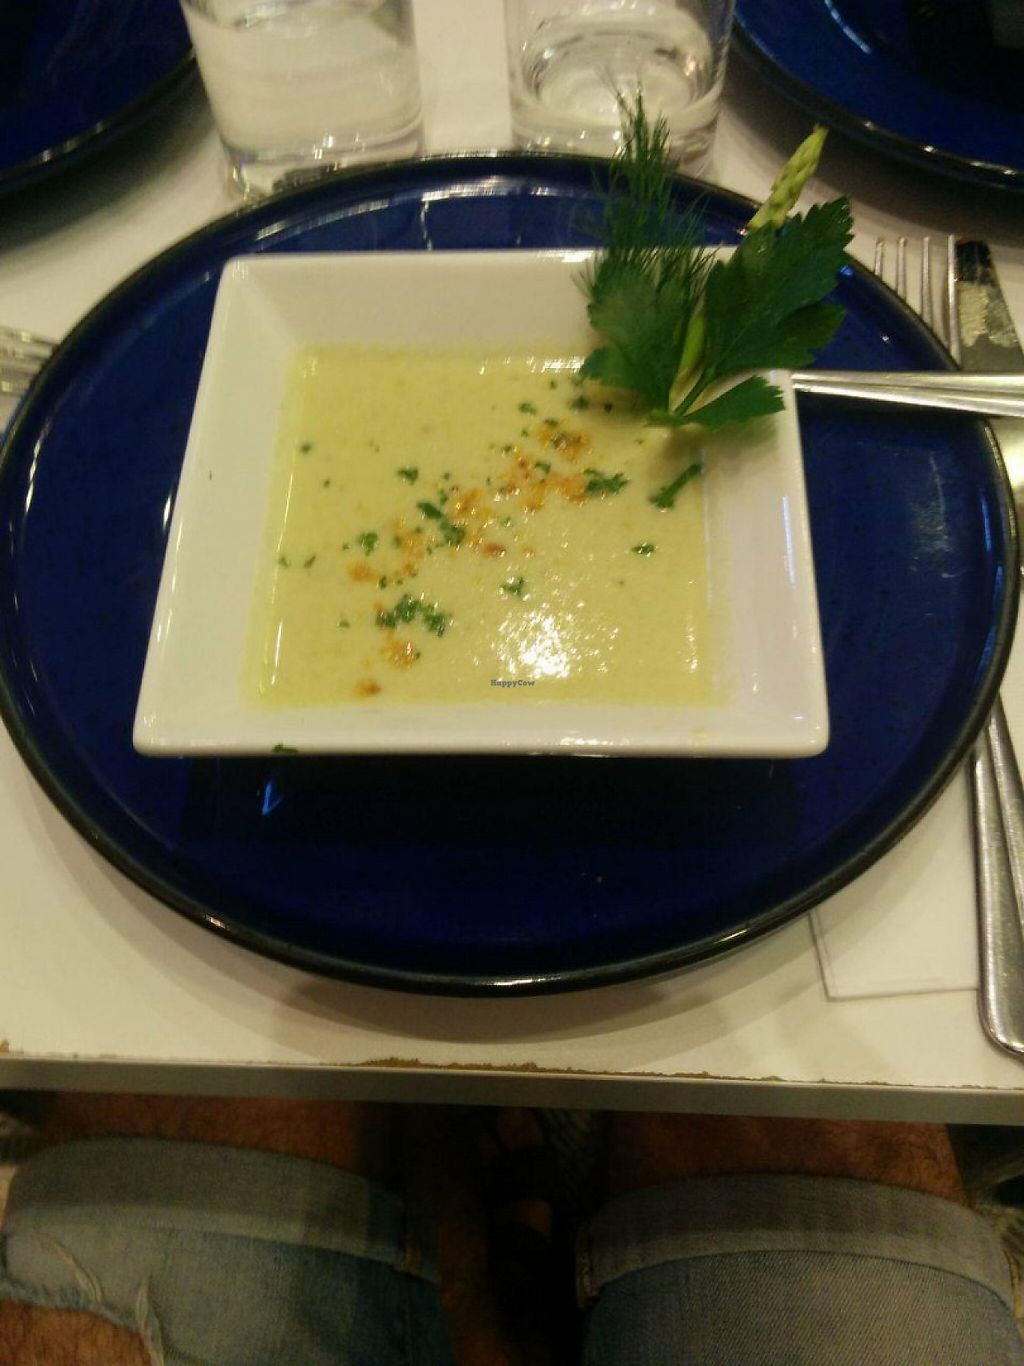 """Photo of Maya Cafe  by <a href=""""/members/profile/FlokiTheCat"""">FlokiTheCat</a> <br/>Creamy style asparagus soup <br/> June 4, 2017  - <a href='/contact/abuse/image/61407/265573'>Report</a>"""